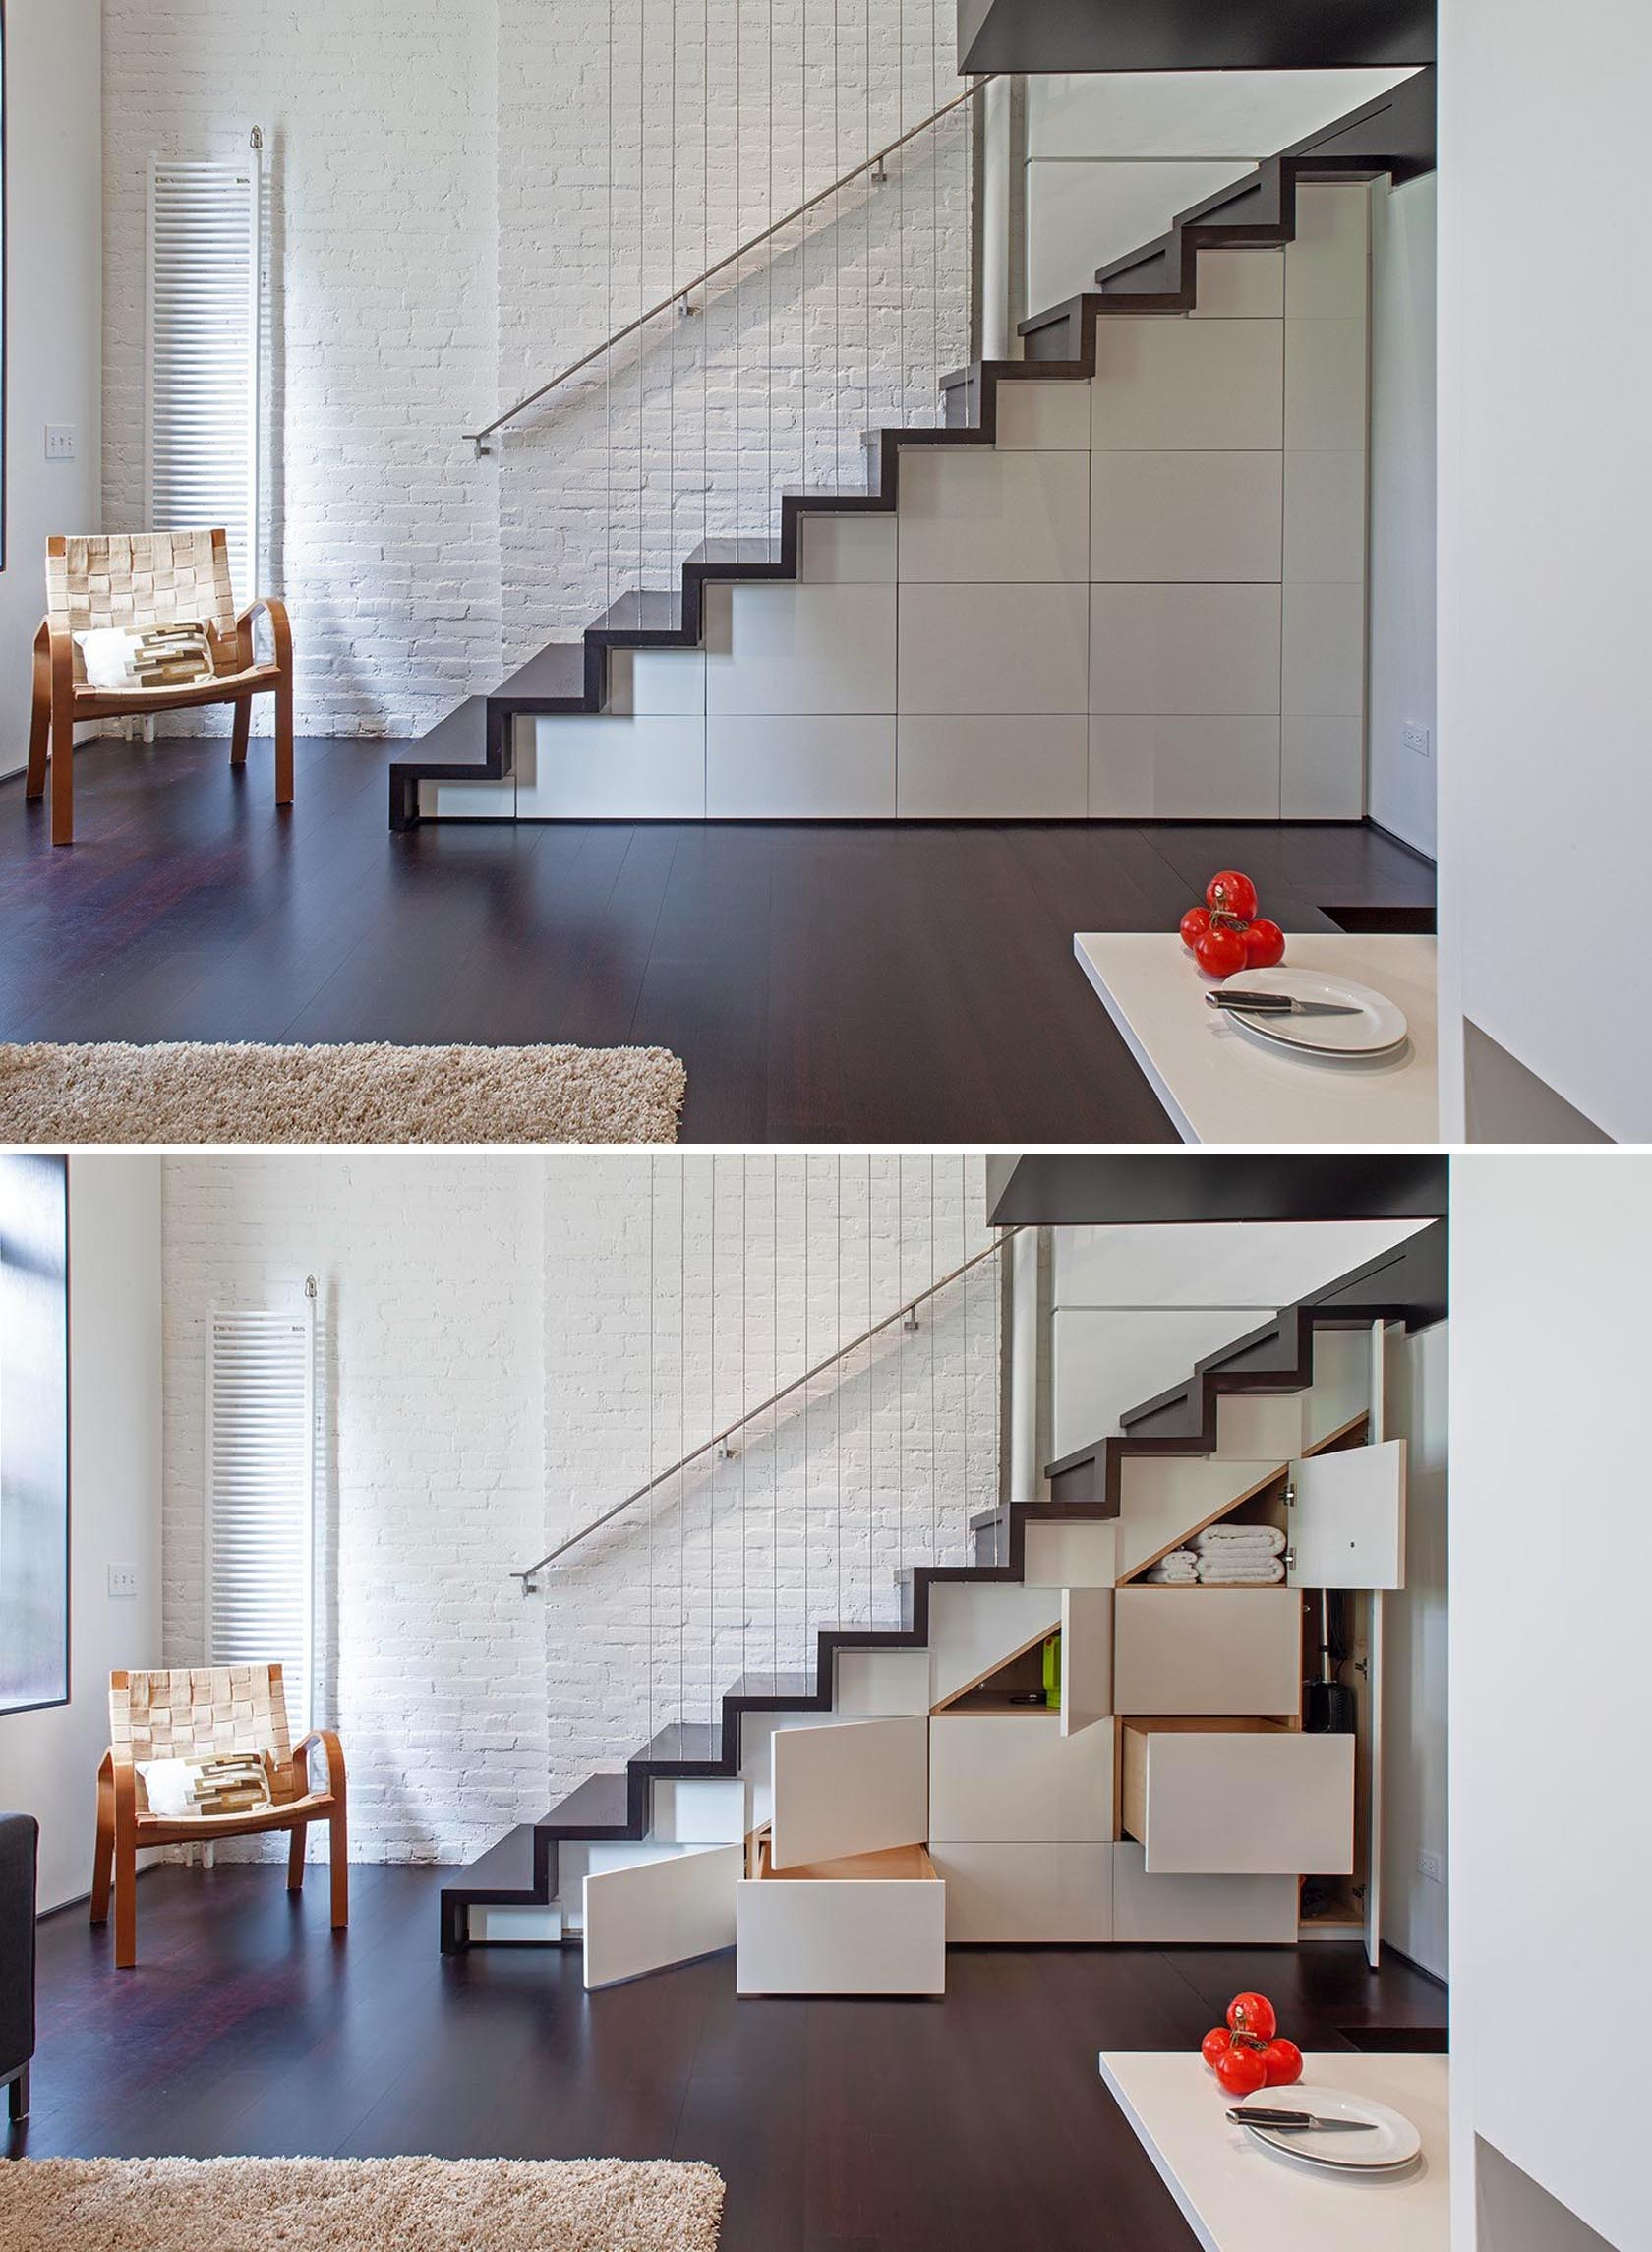 Under stair storage cabinets in a variety of sizes.